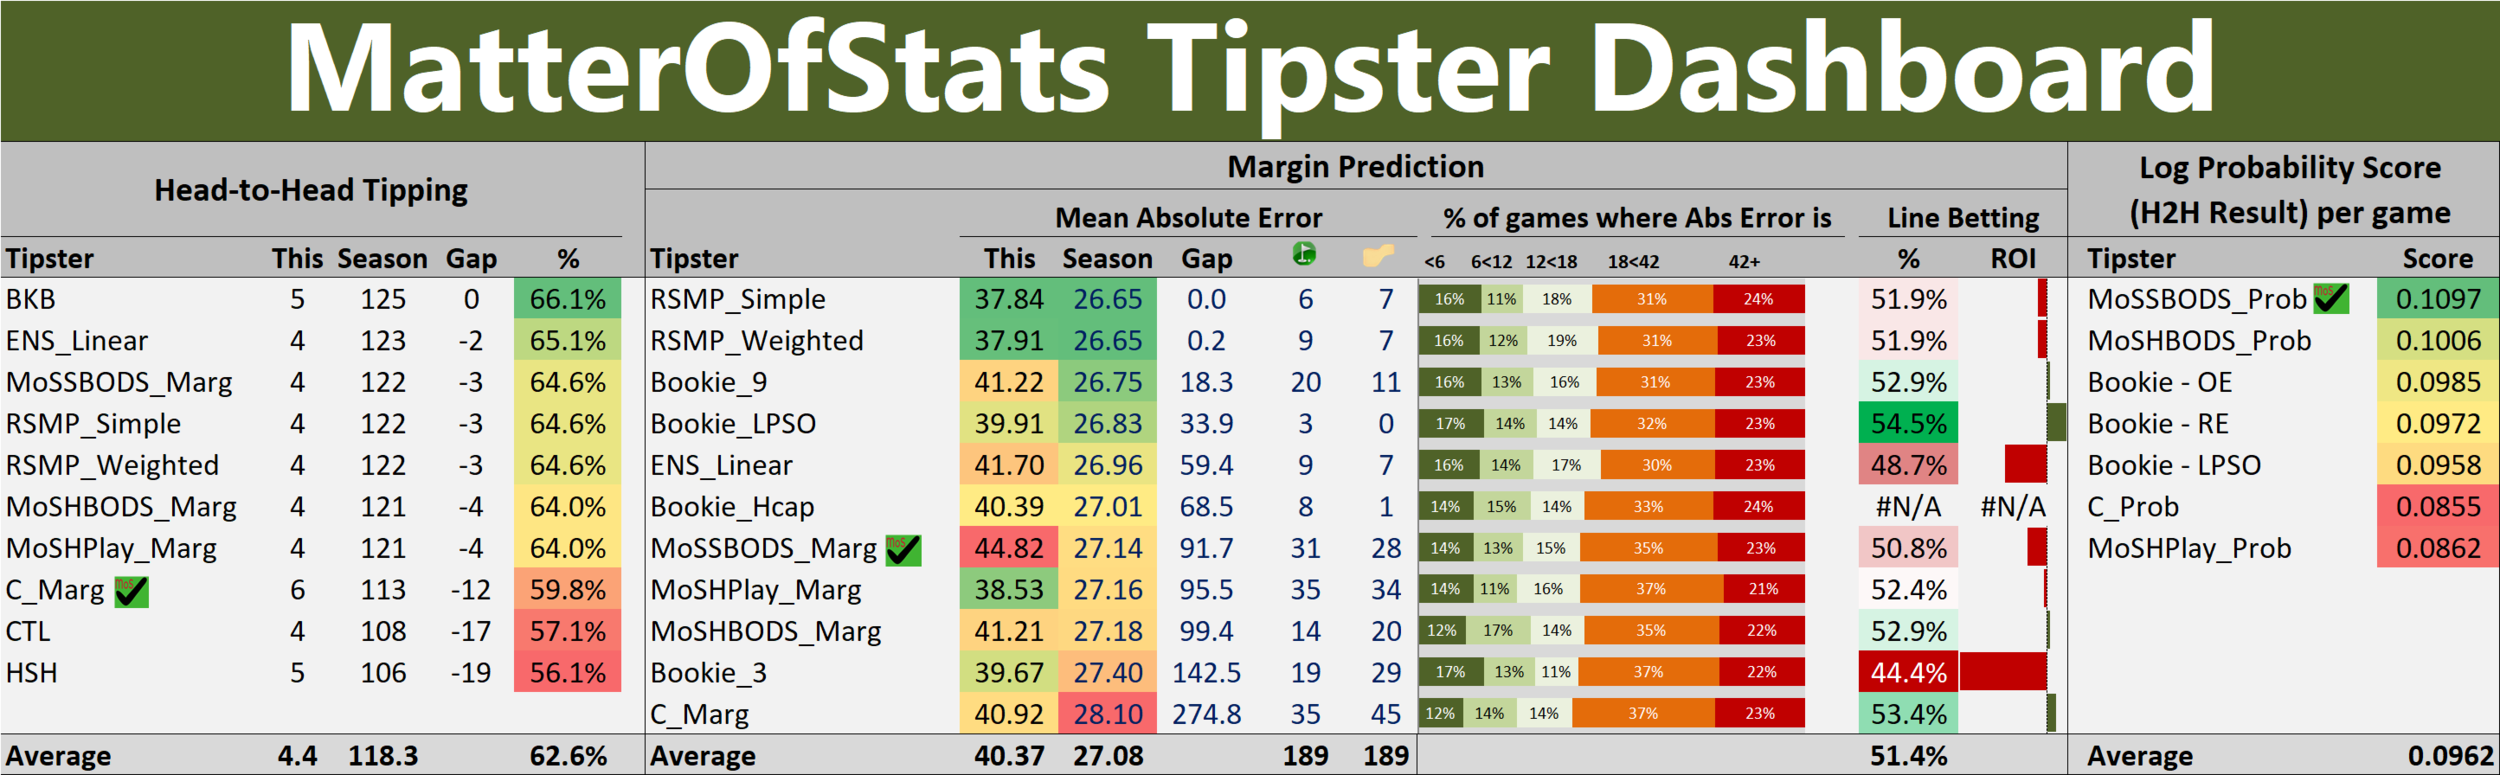 R22 - Tipster Dashboard.png